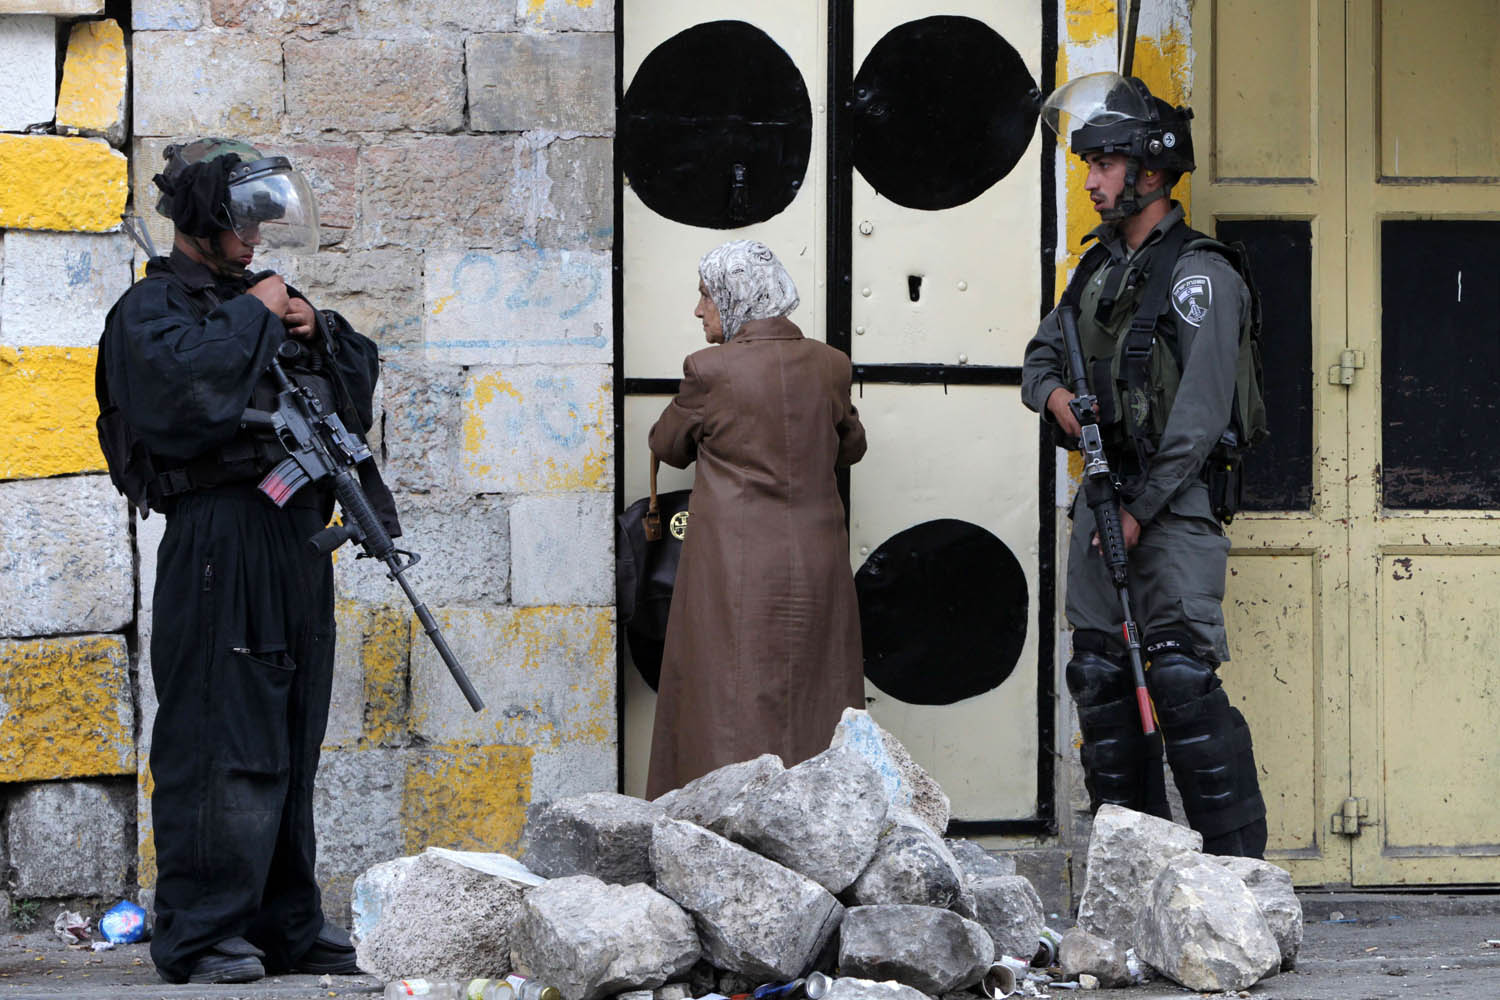 Sept. 24, 2013. A Palestinian woman looks at Israeli security forces standing outside her door as they monitor the streets during clashes with Palestinian stone throwers in the divided West Bank city of Hebron, near the Jewish settlements of Beit Hadassa and Tal Romeda.